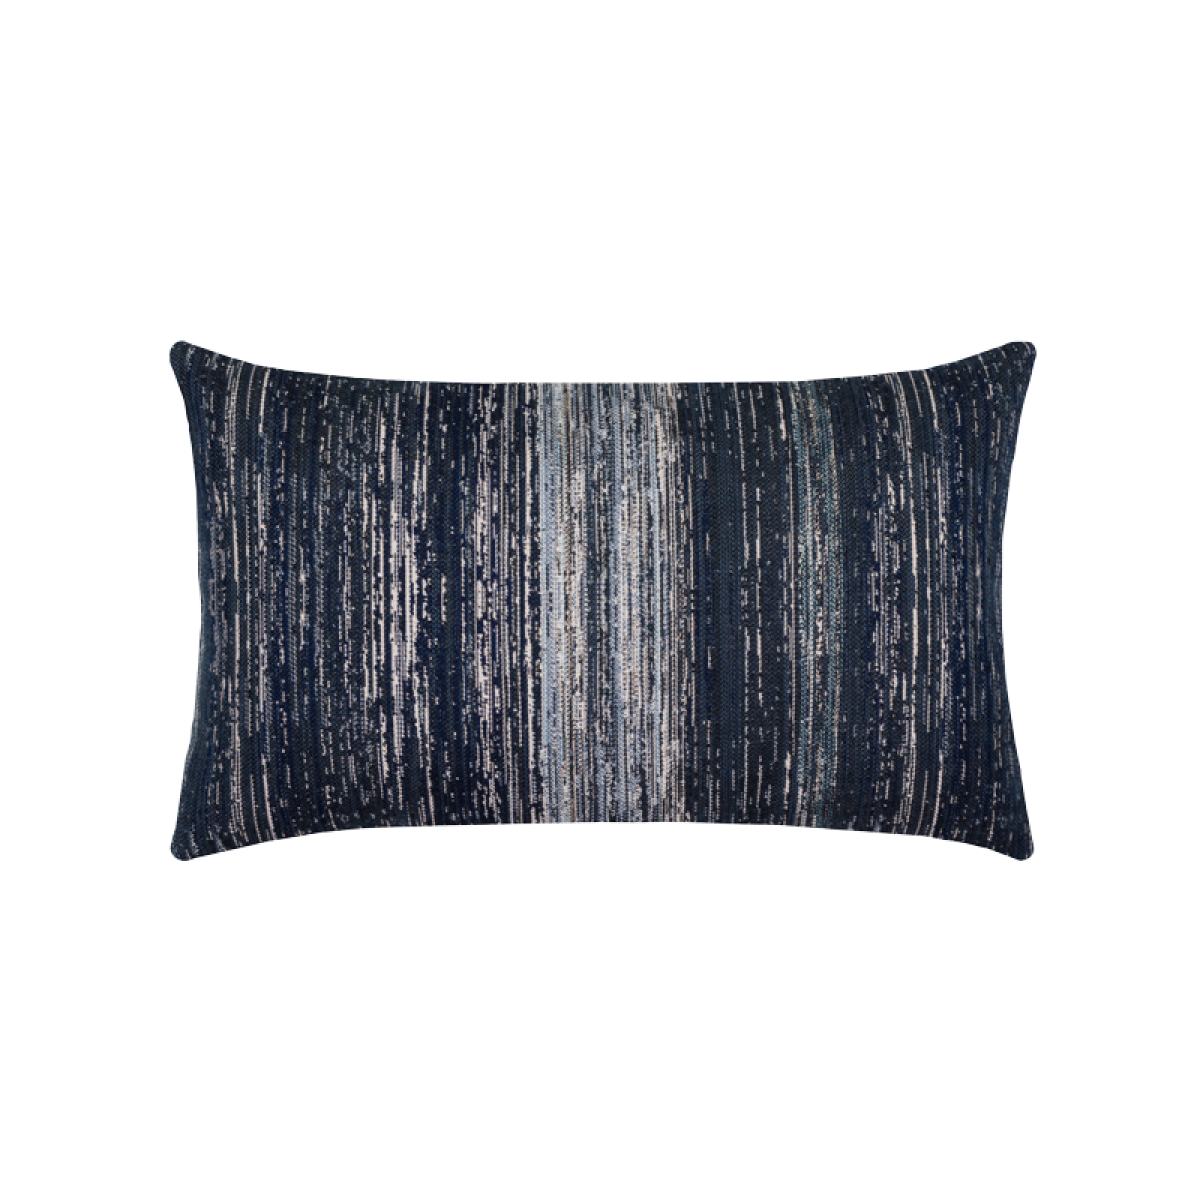 Back of Textured Indigo Lumbar